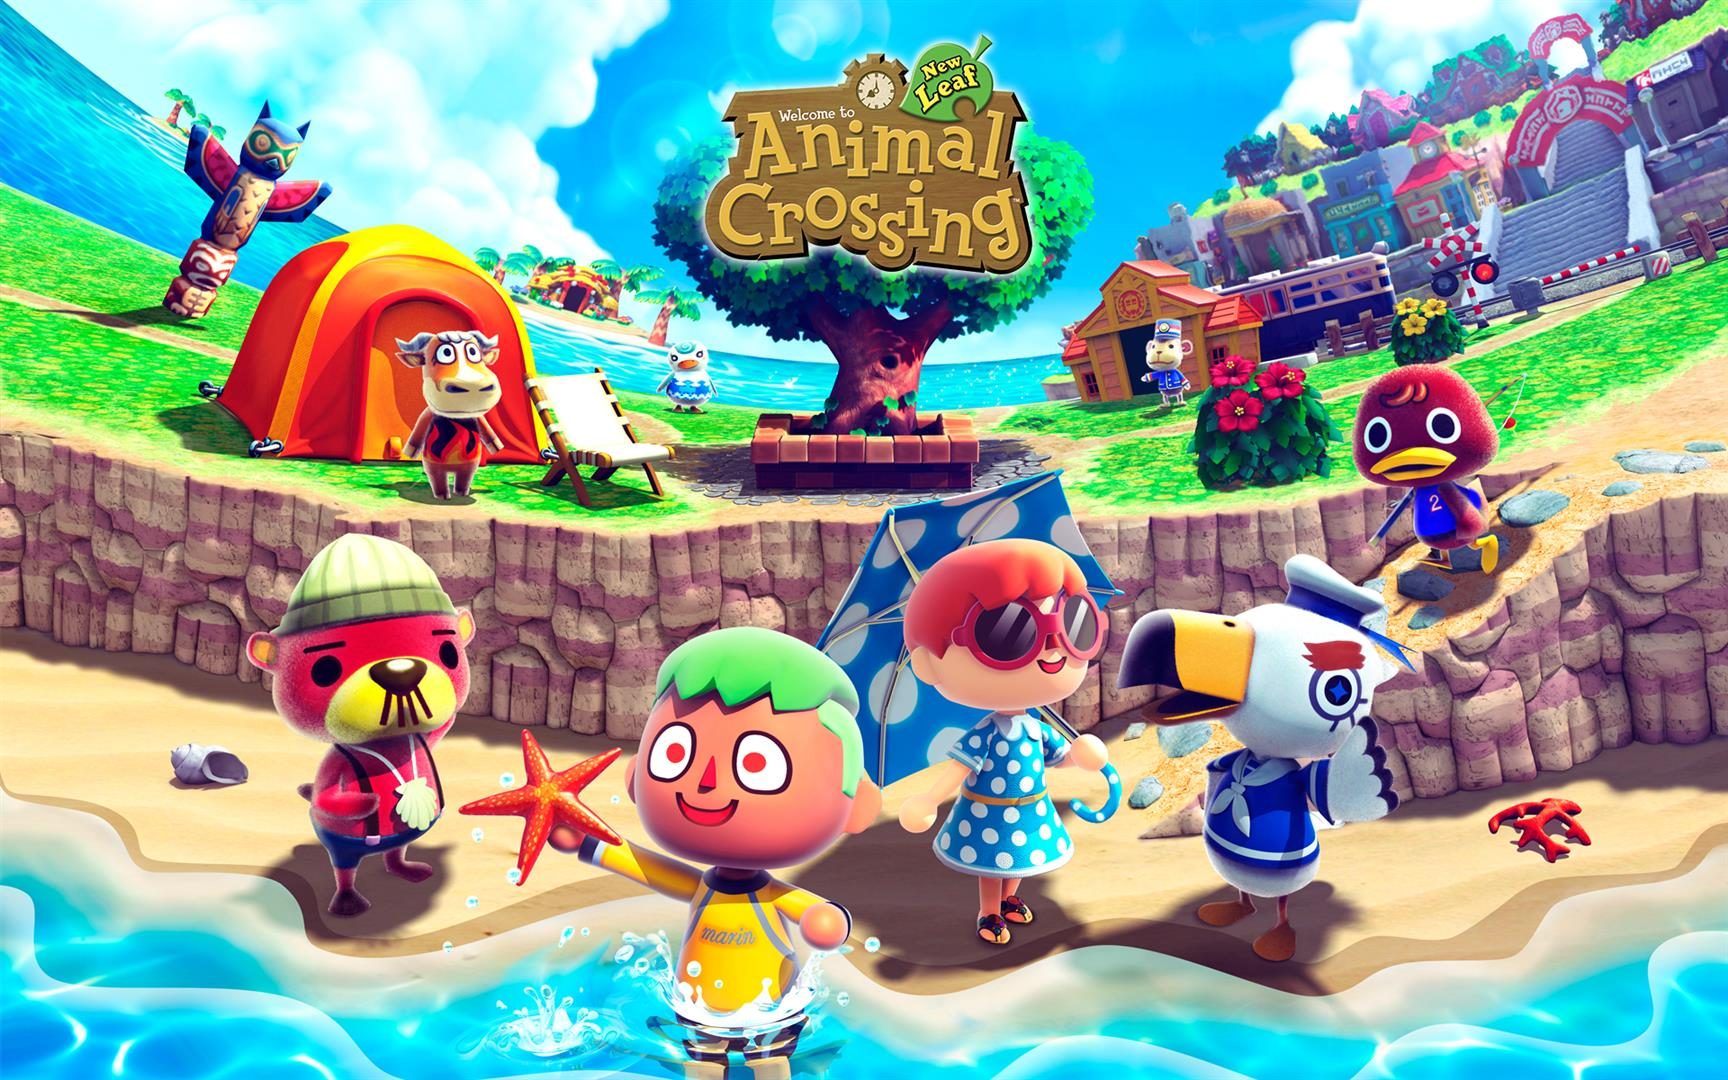 Official animal crossing: new horizons twitter account confirms.